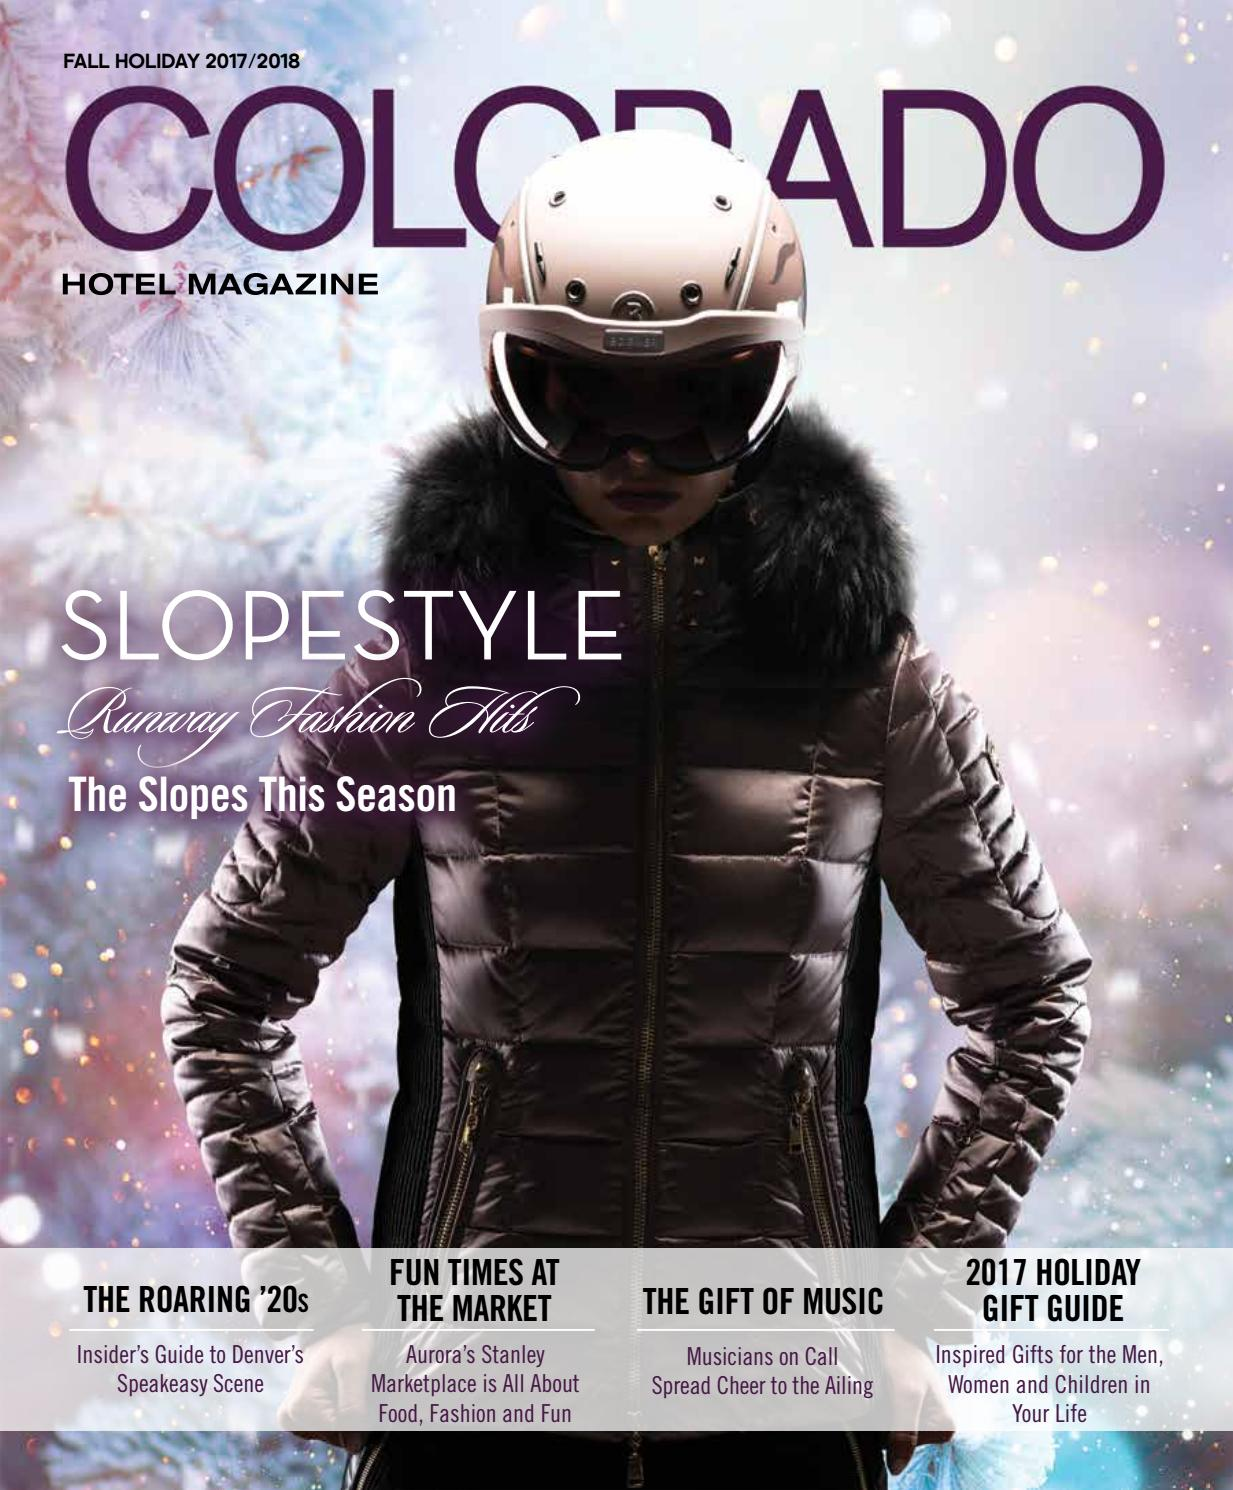 0267e5e7a8d8 Colorado Hotel Magazine - Fall/Holiday 2017/2018 by Dallas Hotel Magazine -  issuu